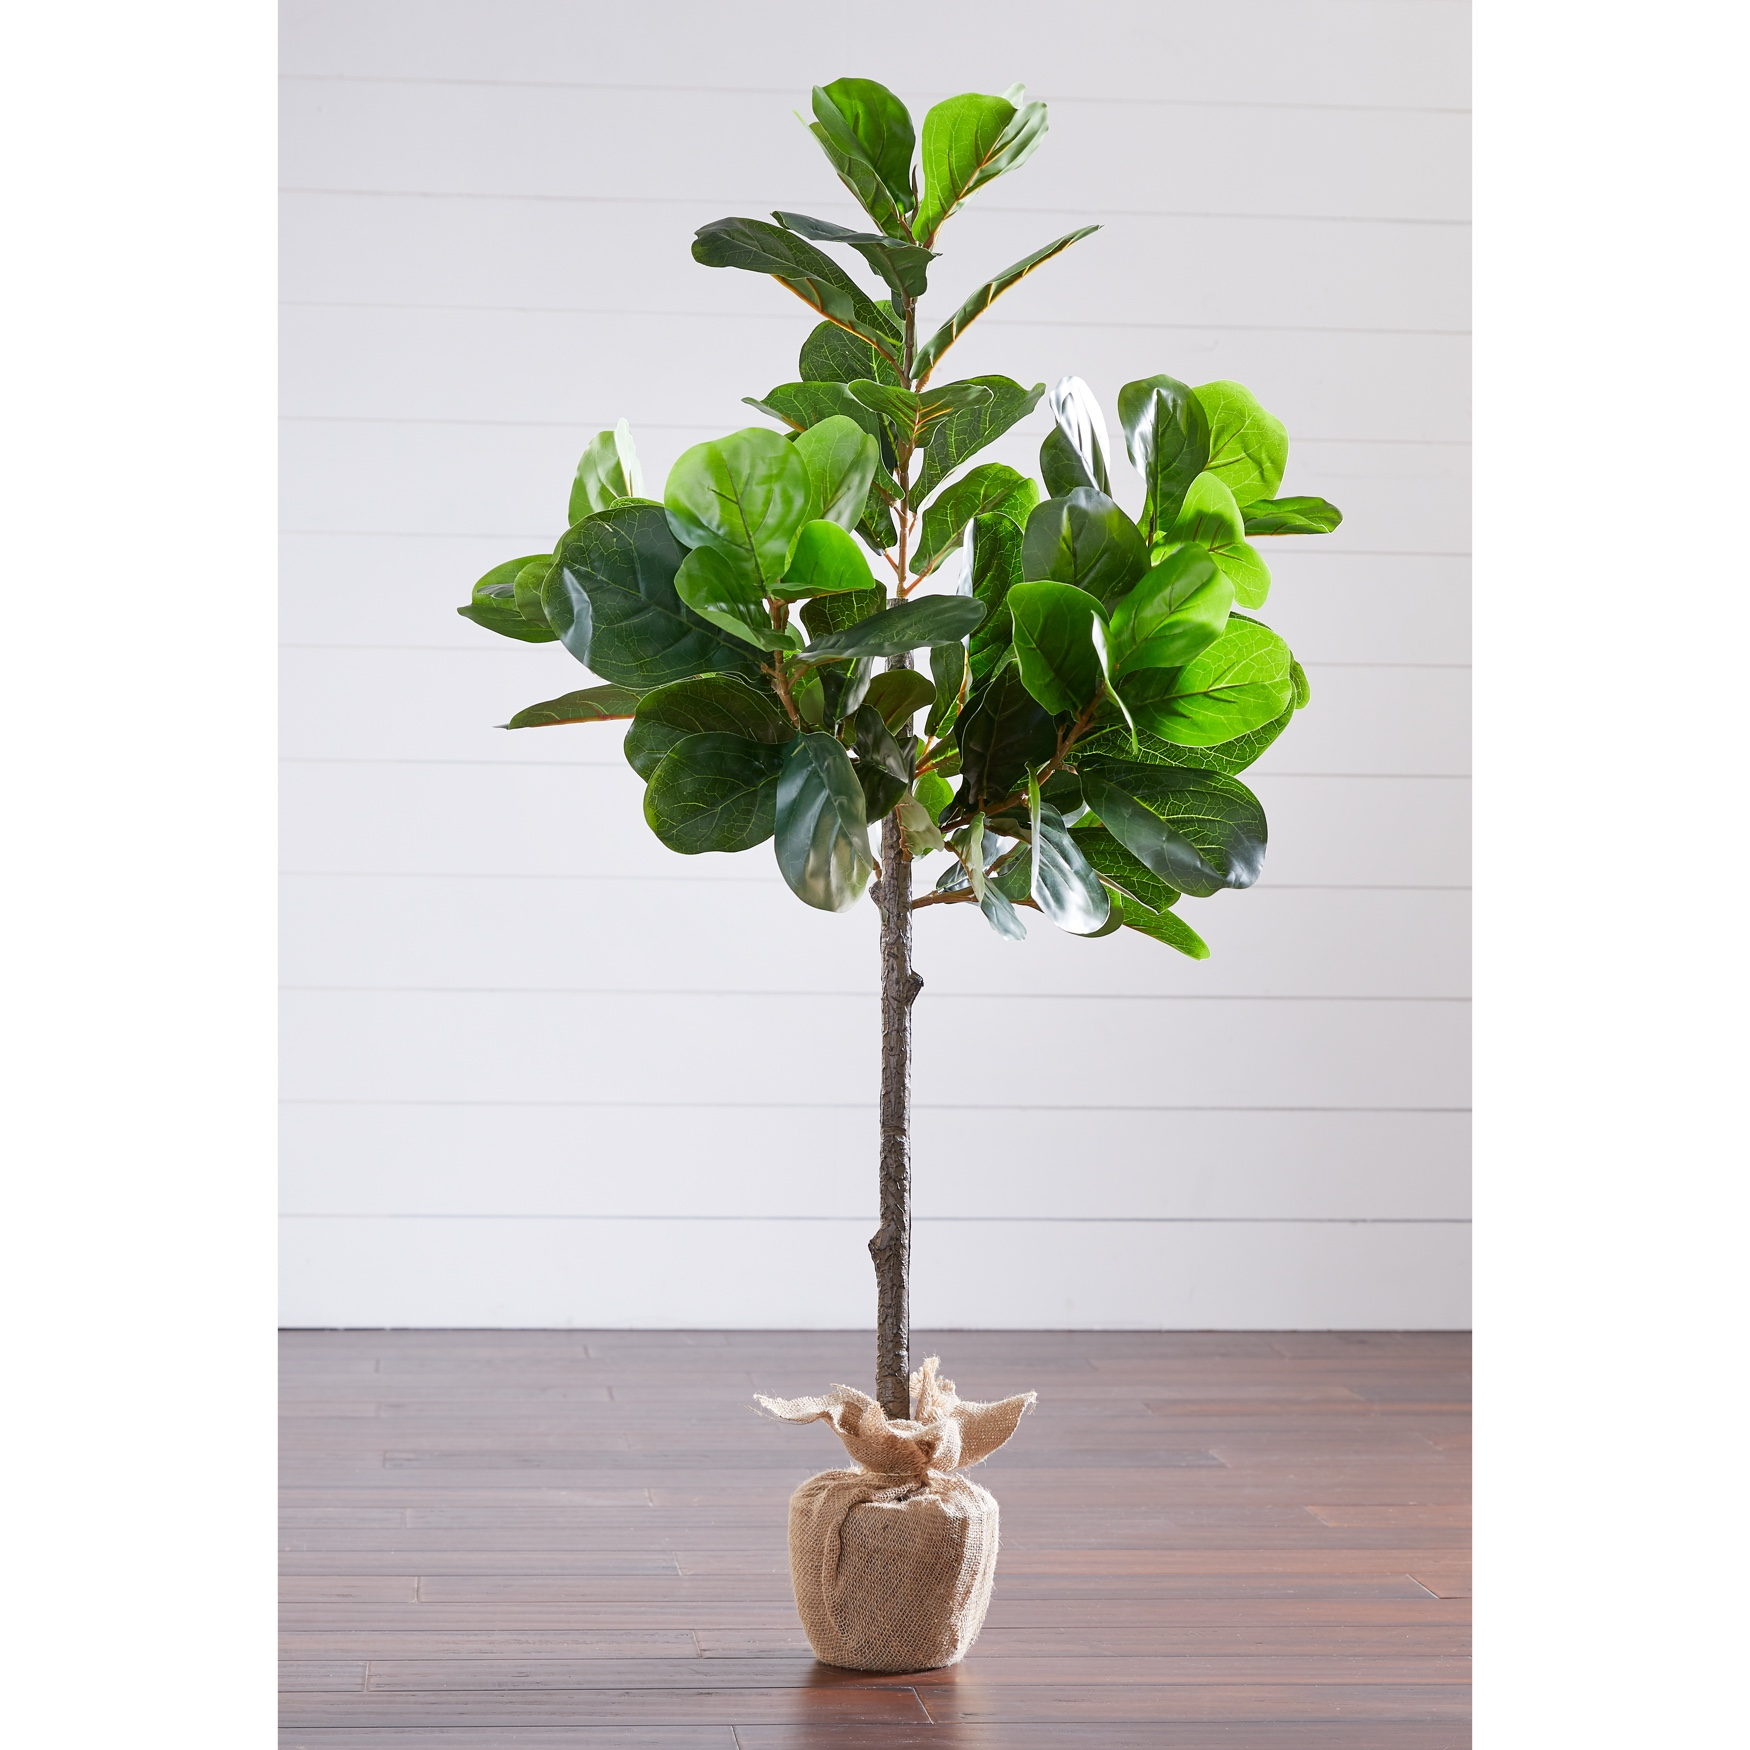 4¼' Fiddle Leaf Fig Tree with Burlap Wrap, GREEN